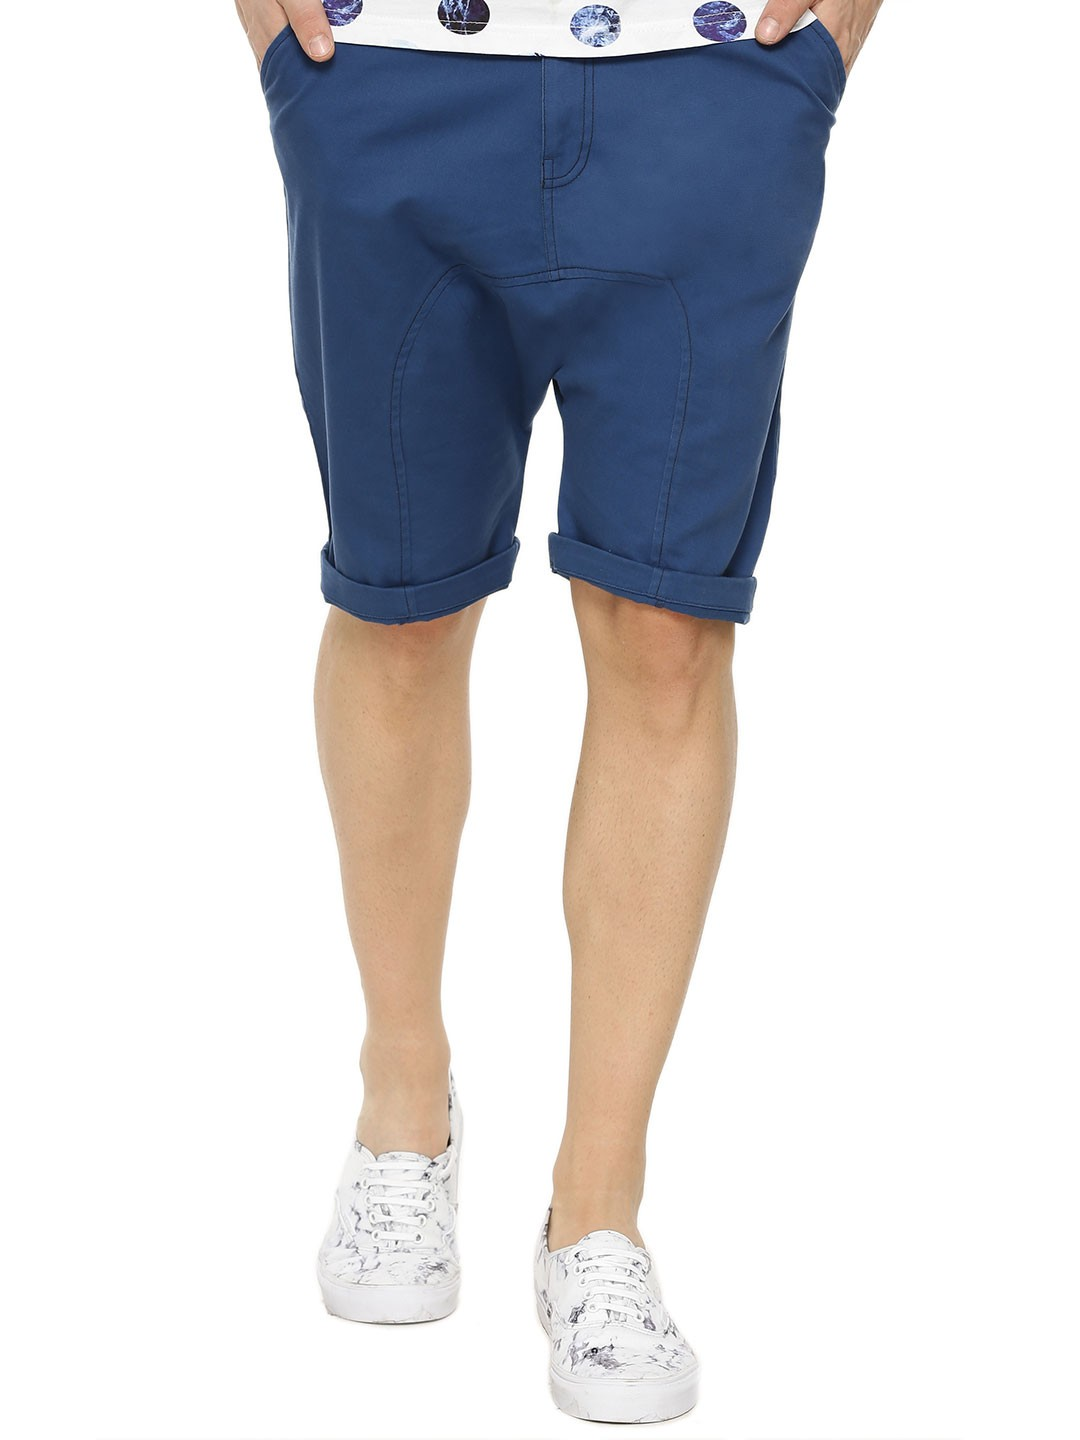 Buy KOOVS Chino Shorts For Men - Men's Blue Shorts Online in India